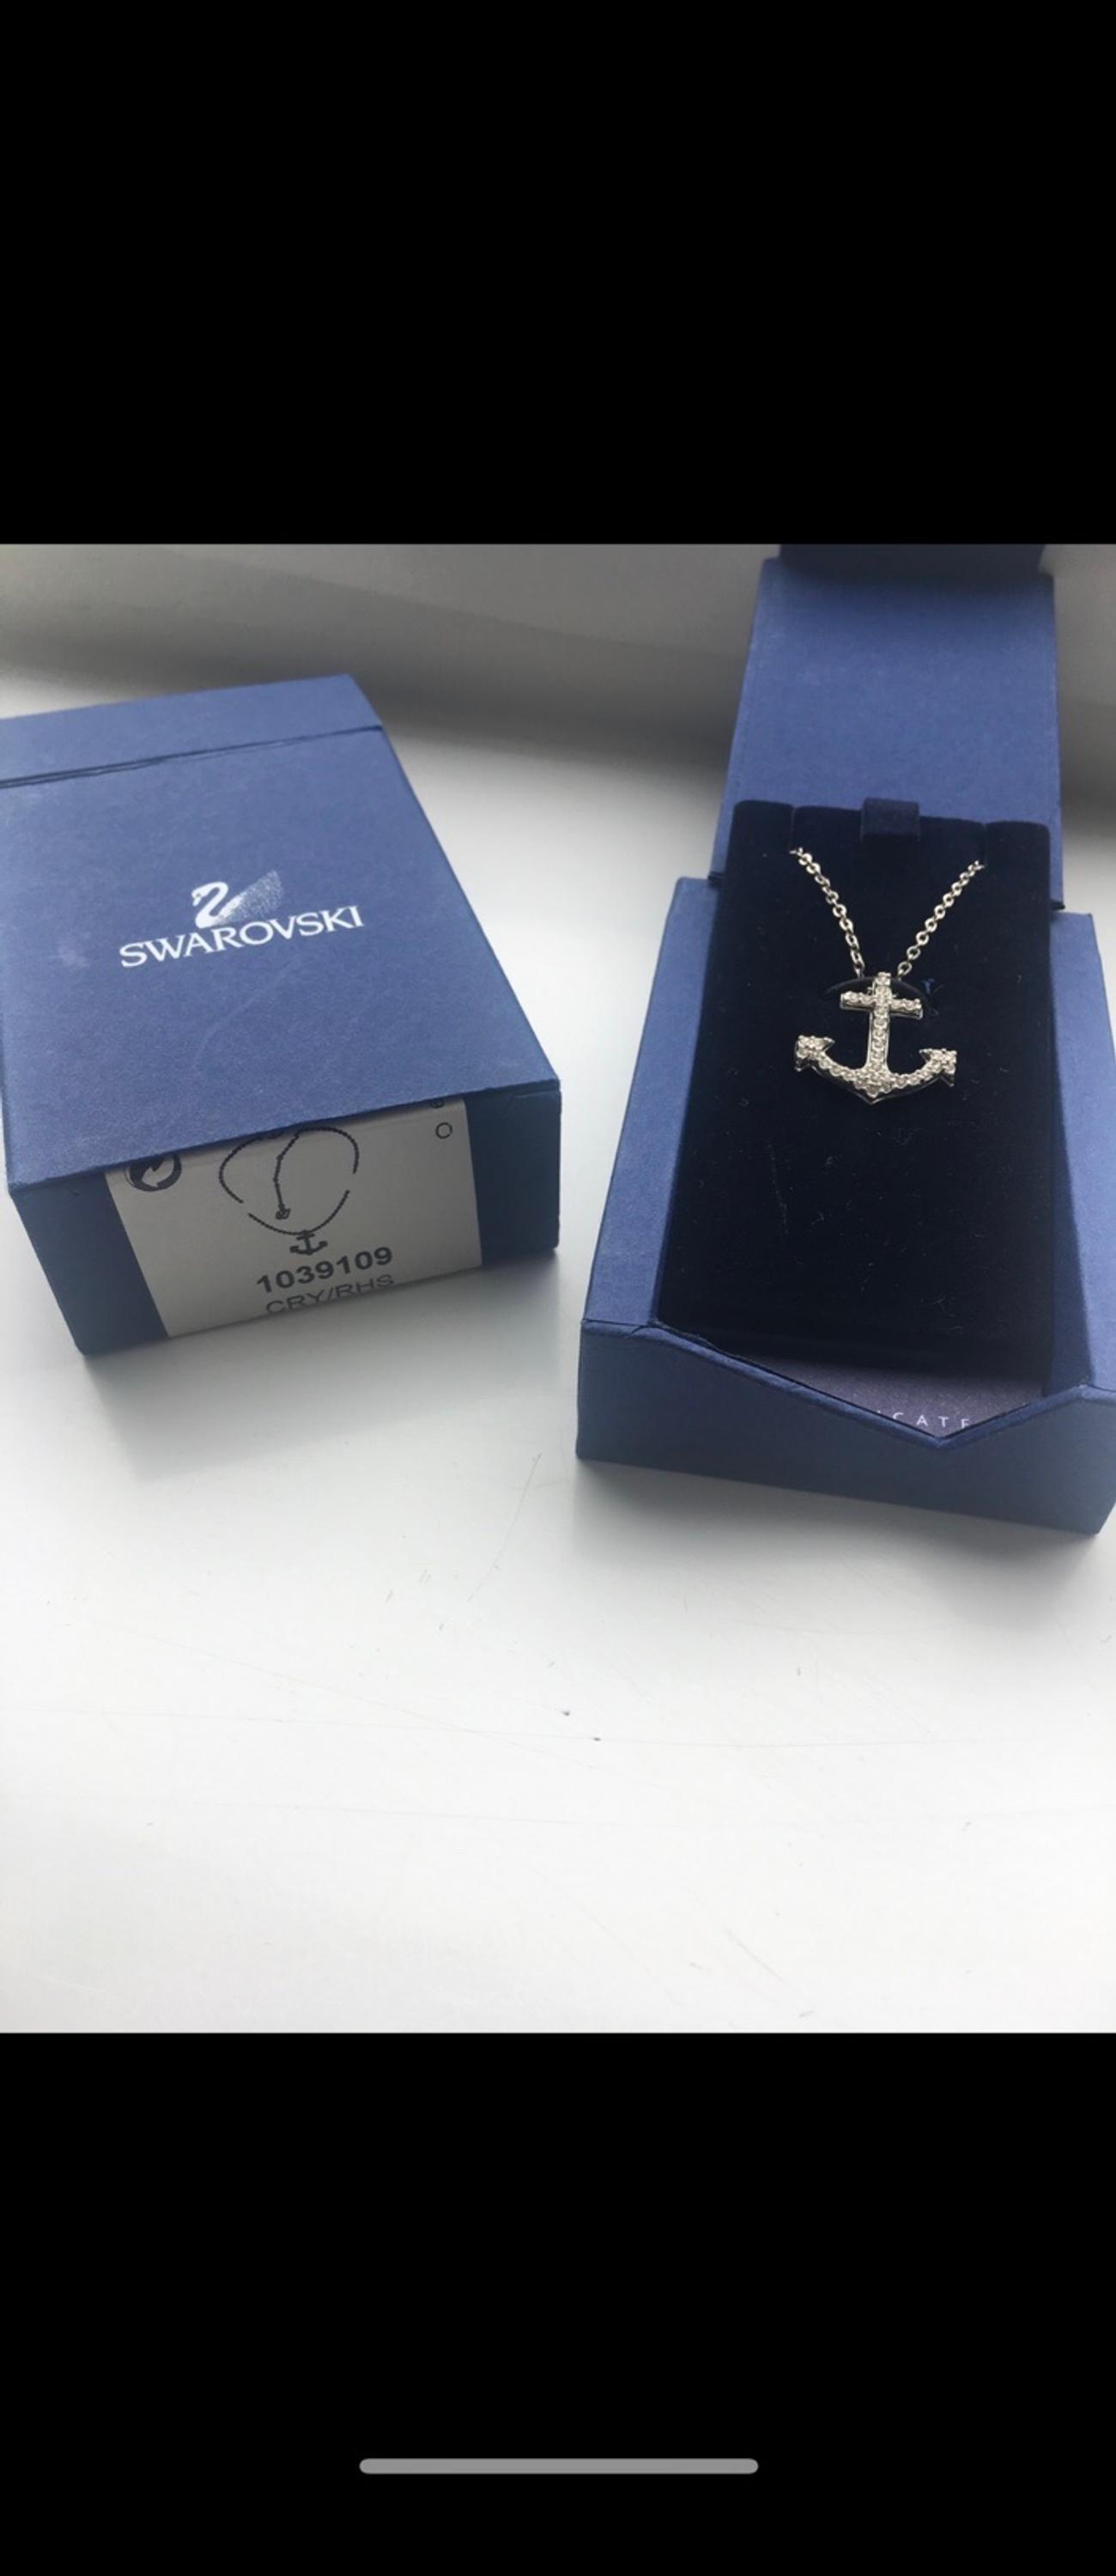 Swarovski anchor necklace. Worn a handful of times for occasions but not loved here. Collection S5 but postage can be arrange if buyer covers cost.